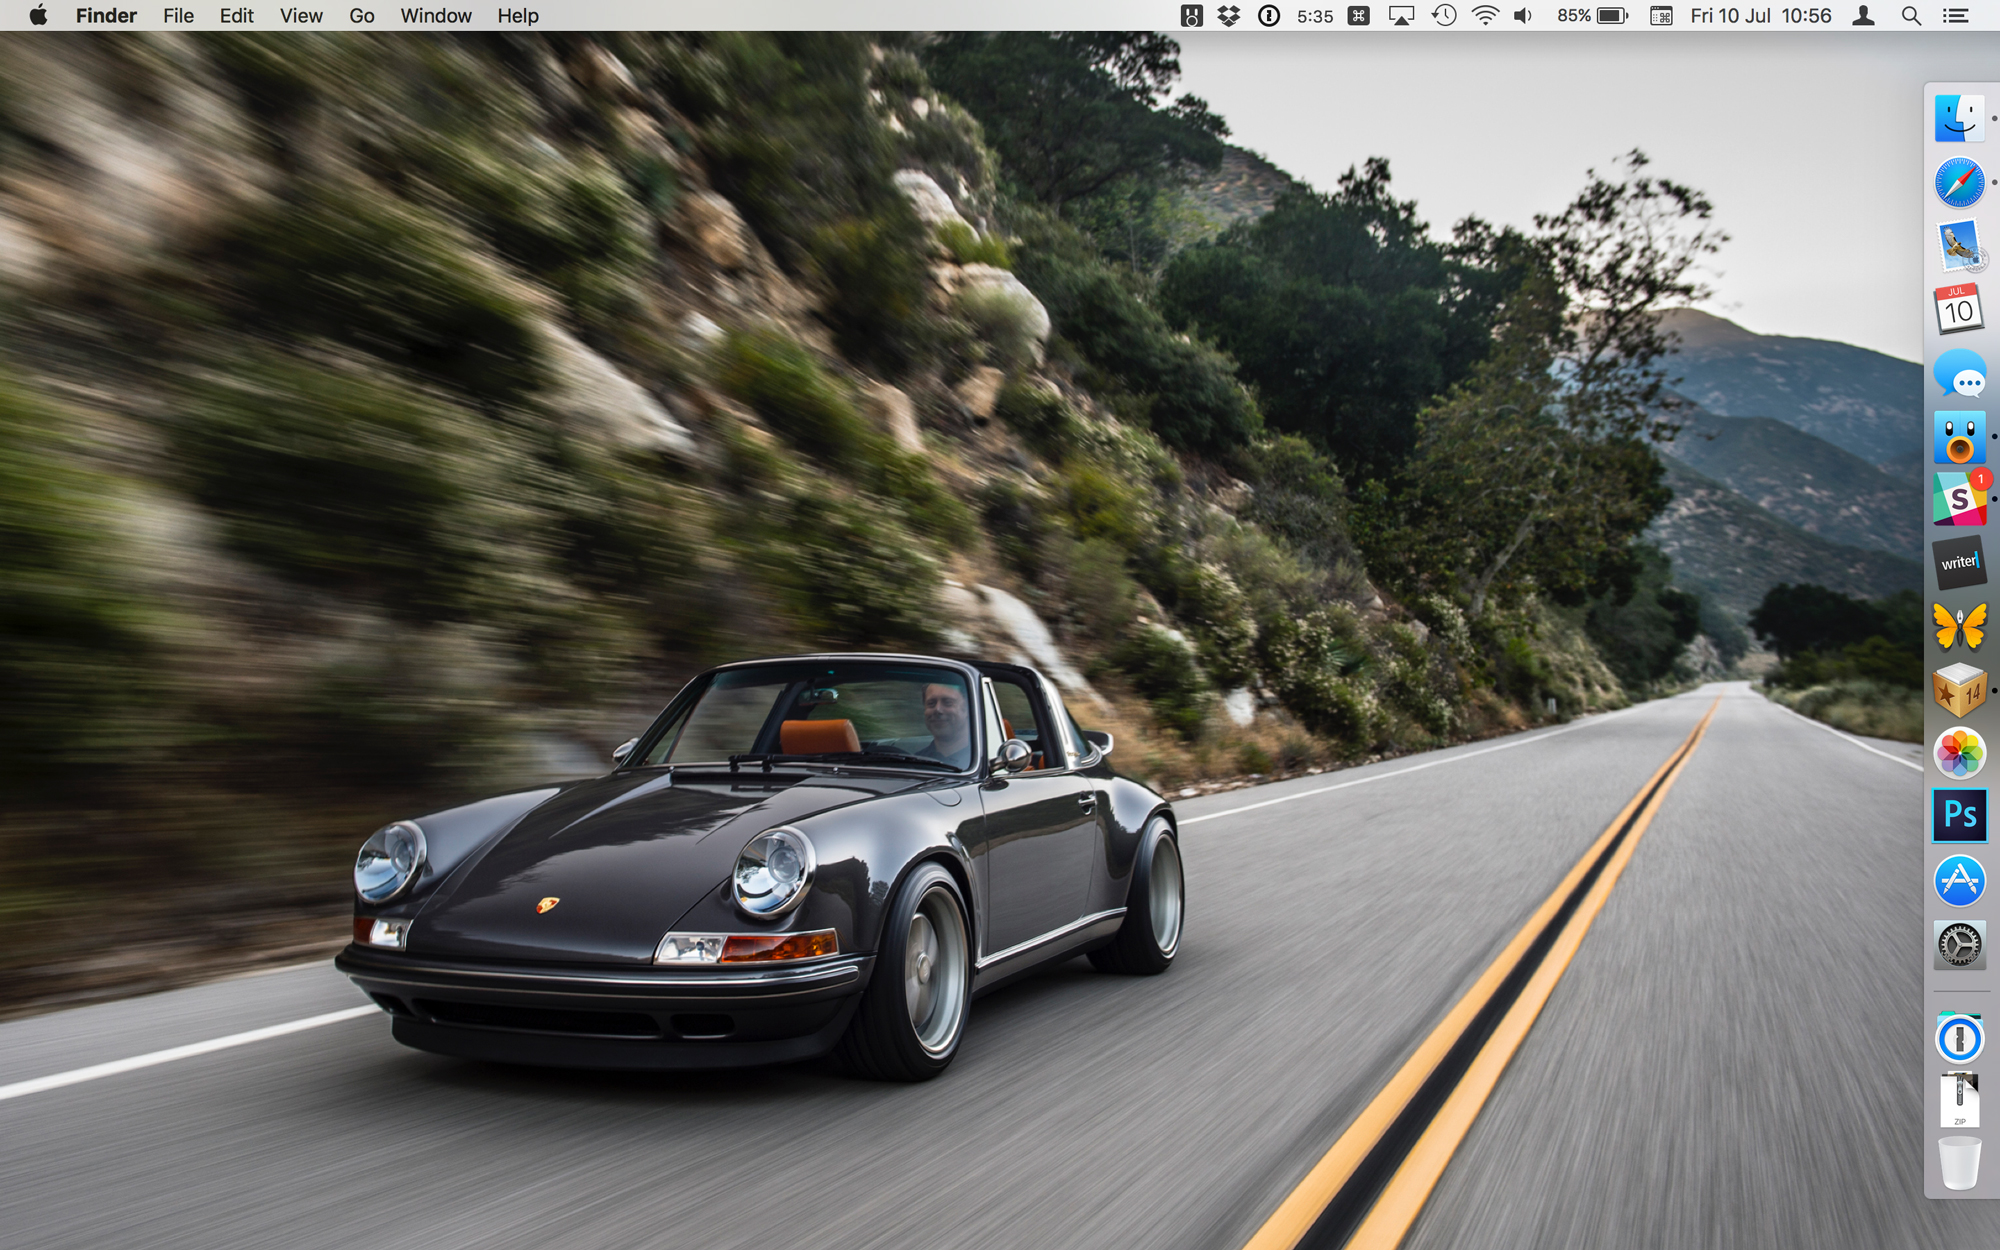 OS-X-El-Capitan-Desktop-with-Porsche-hero